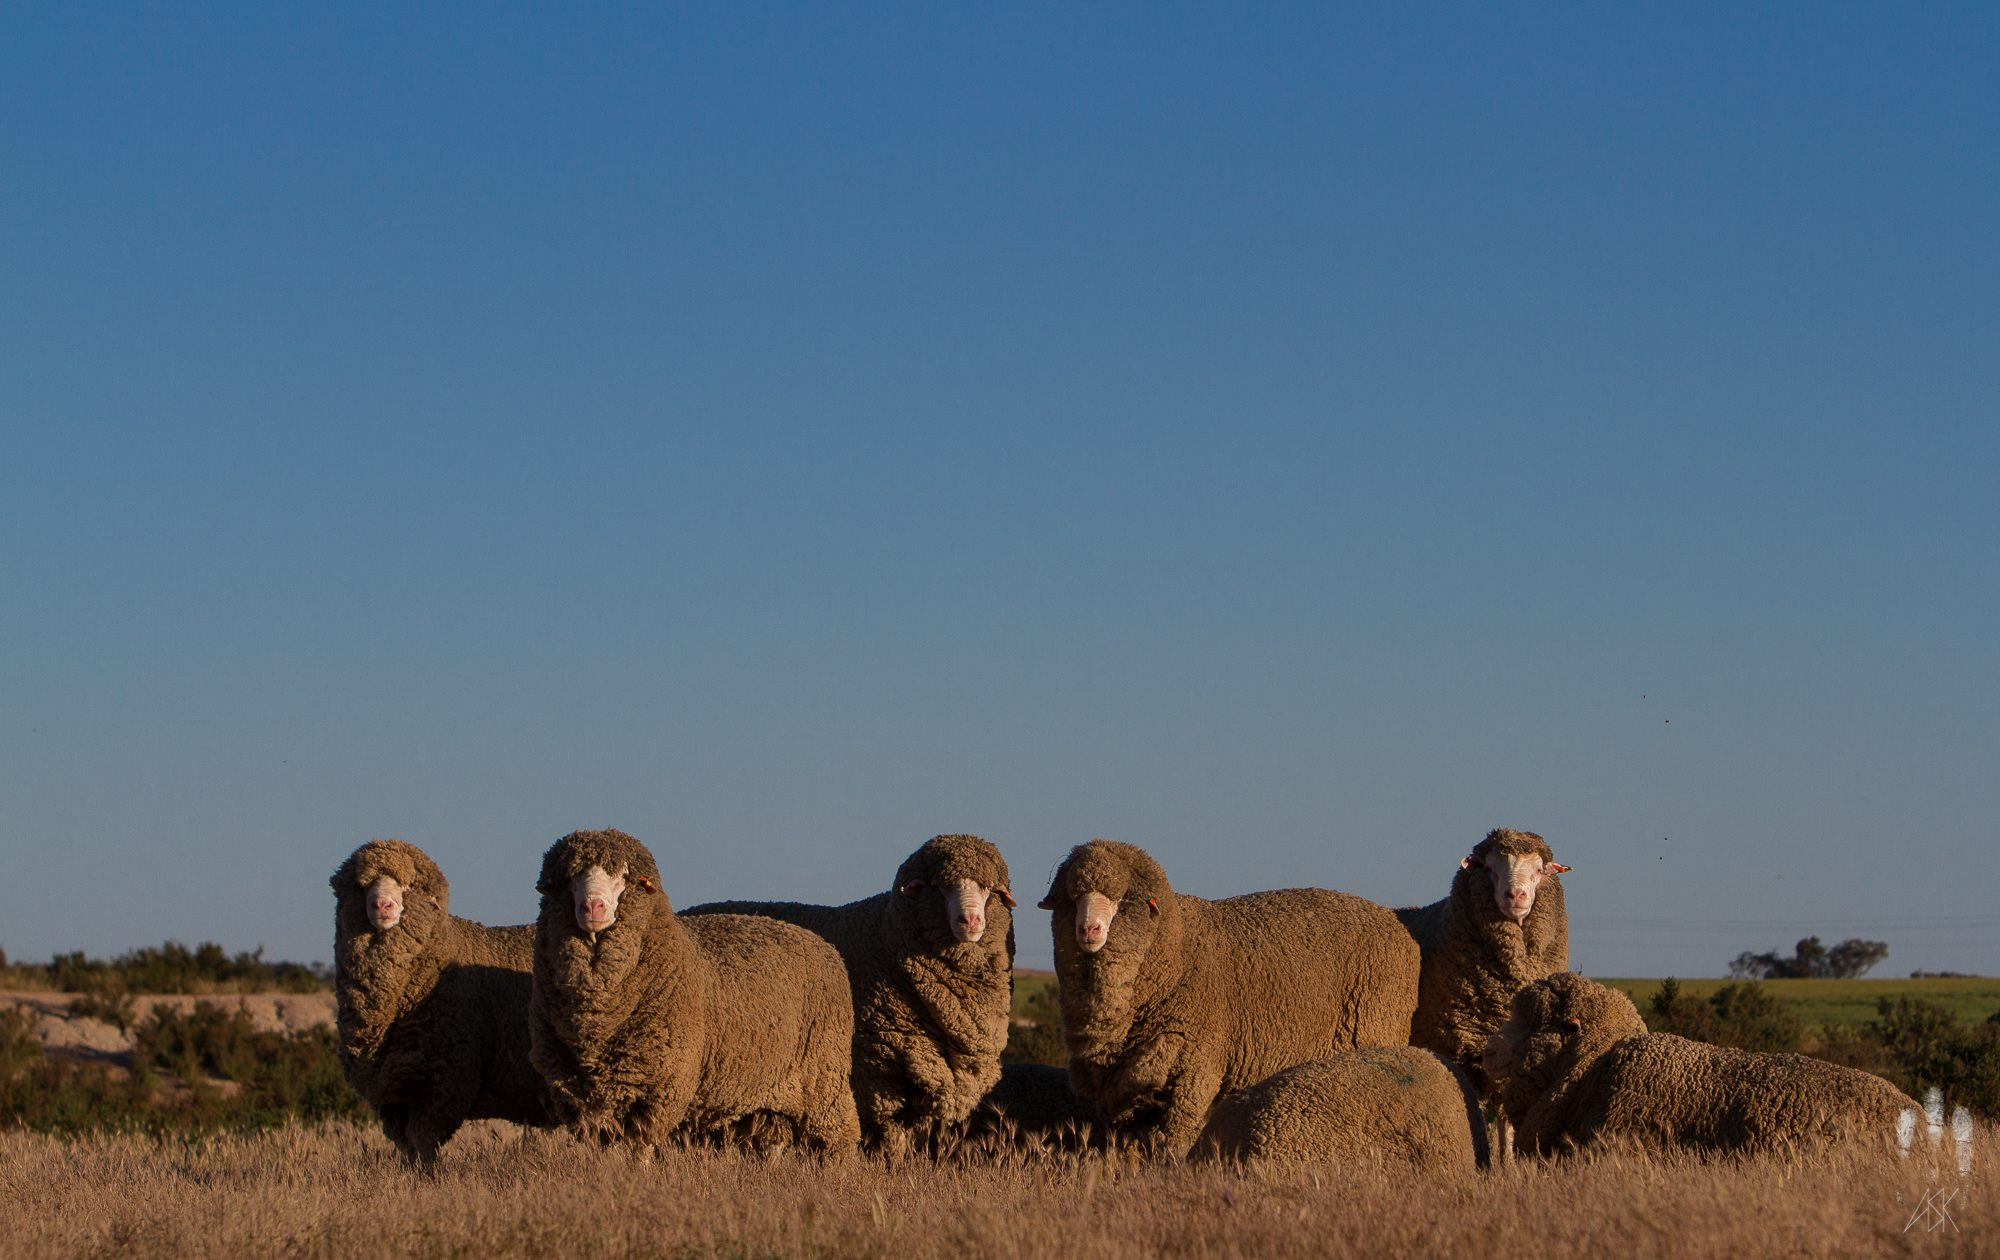 Some heavily-burdened sheep. Lake Hurlestone Conservation Reserve, Western Australia. October 2013. Photo by Angus Kennedy.